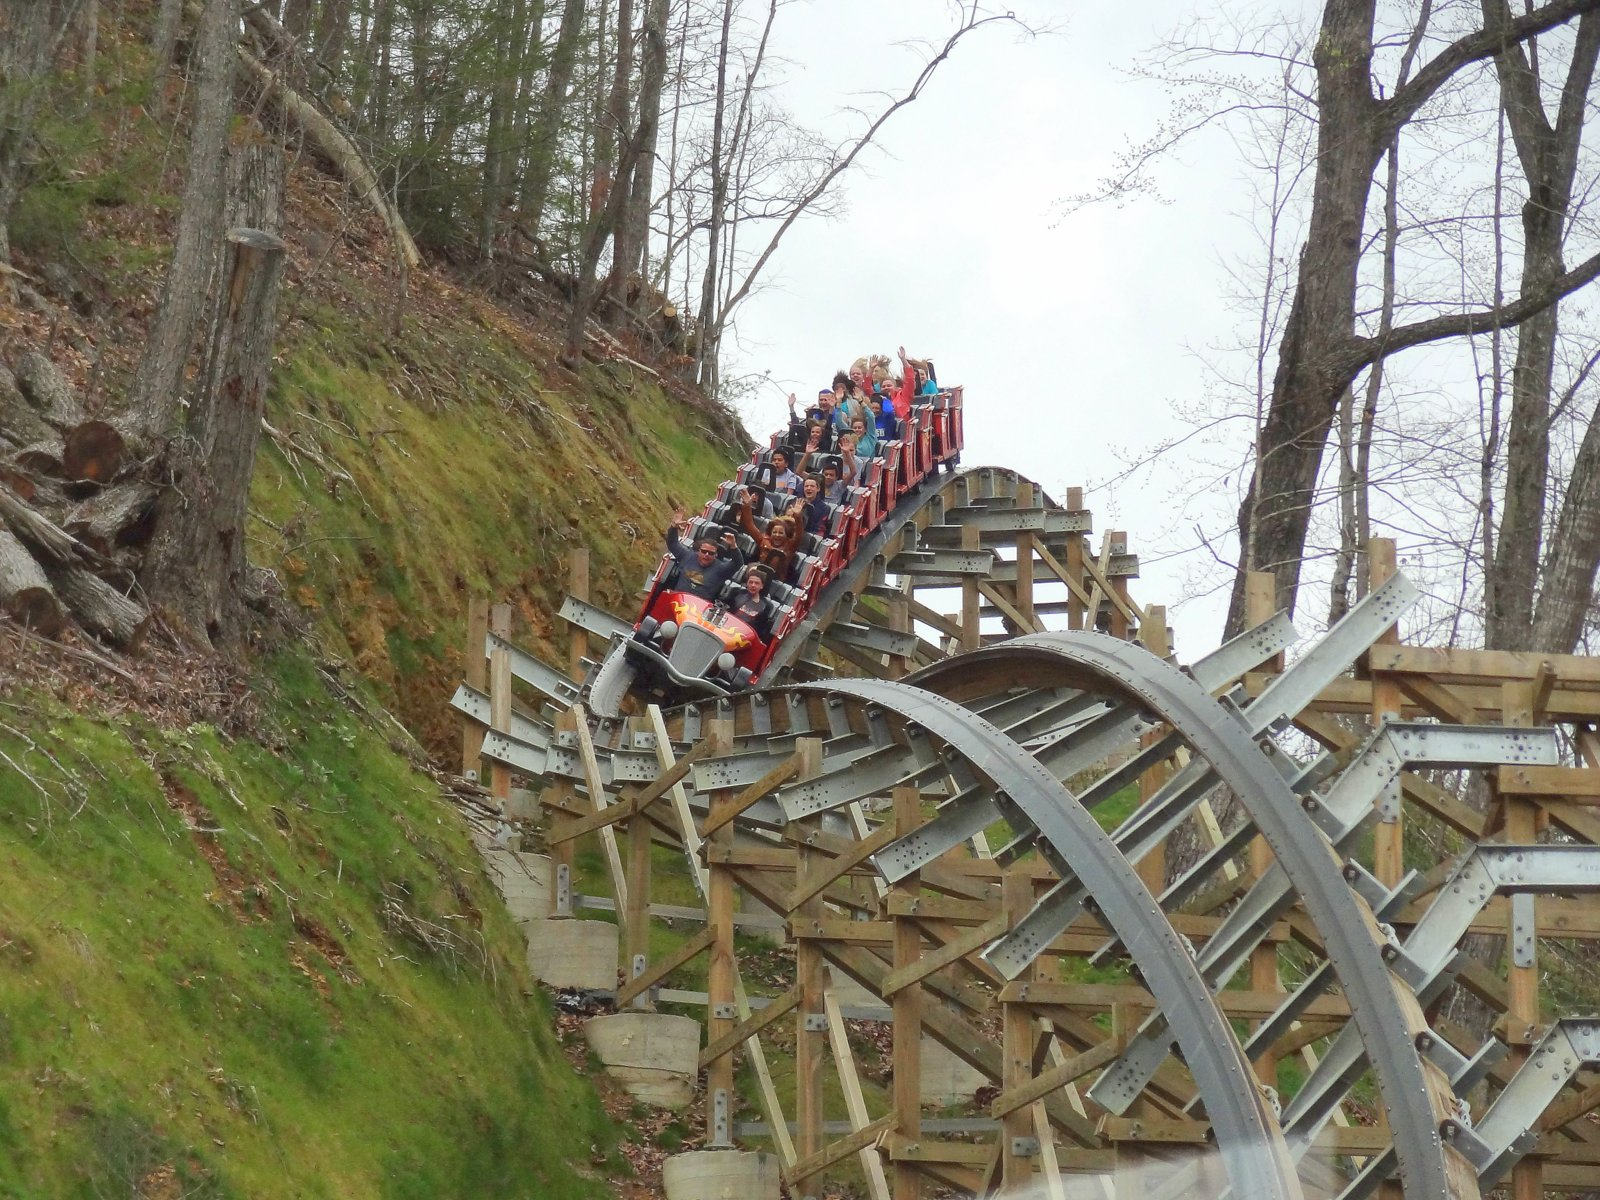 Whats New At Dollywood In 2017 Coaster101